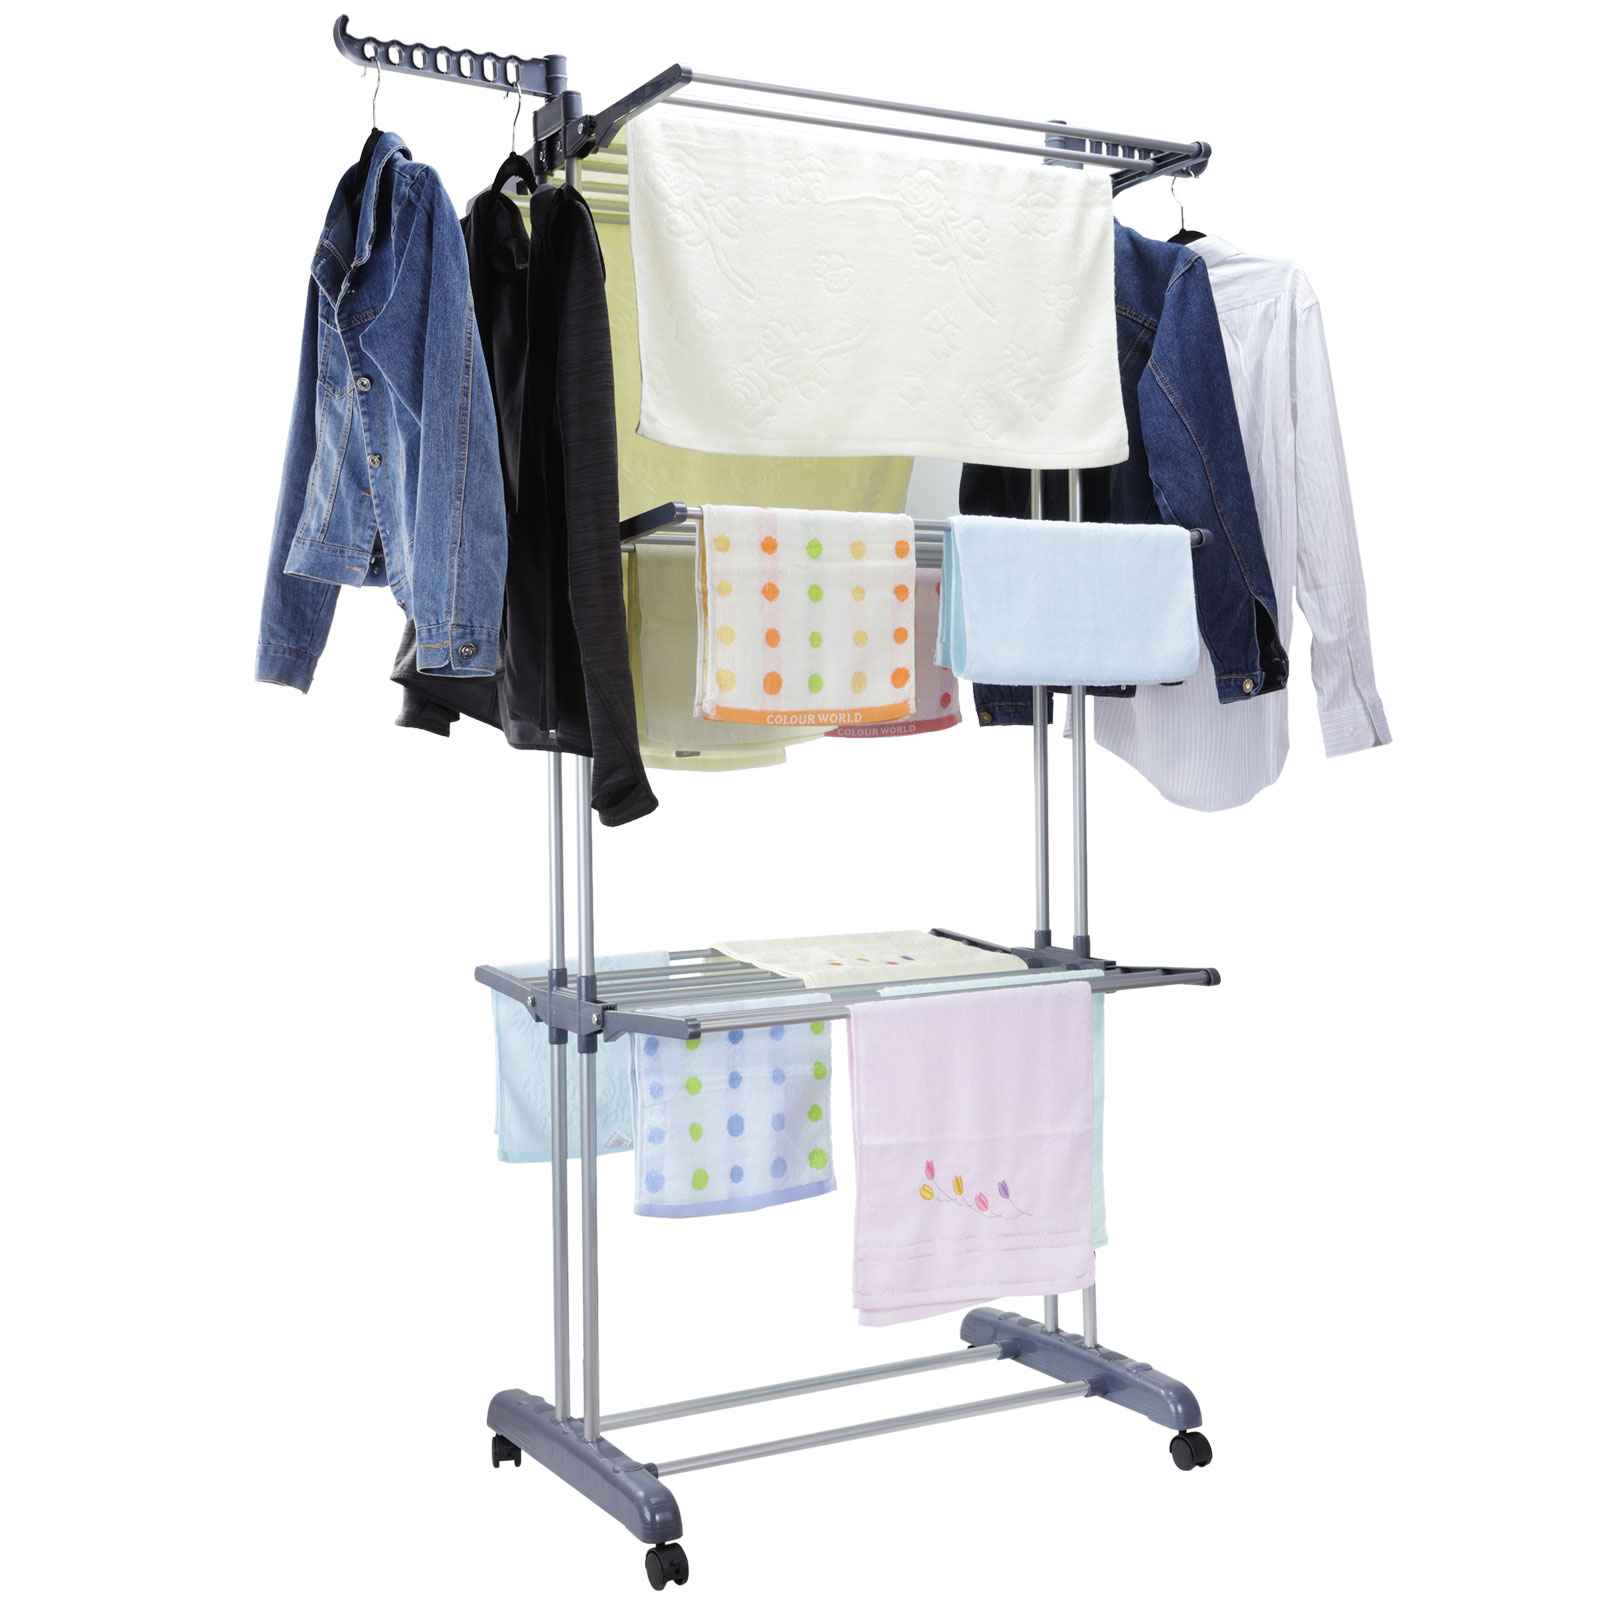 Outdoor Clothes Dryer ~ Foldable tier clothes airer laundry dryer rack indoor